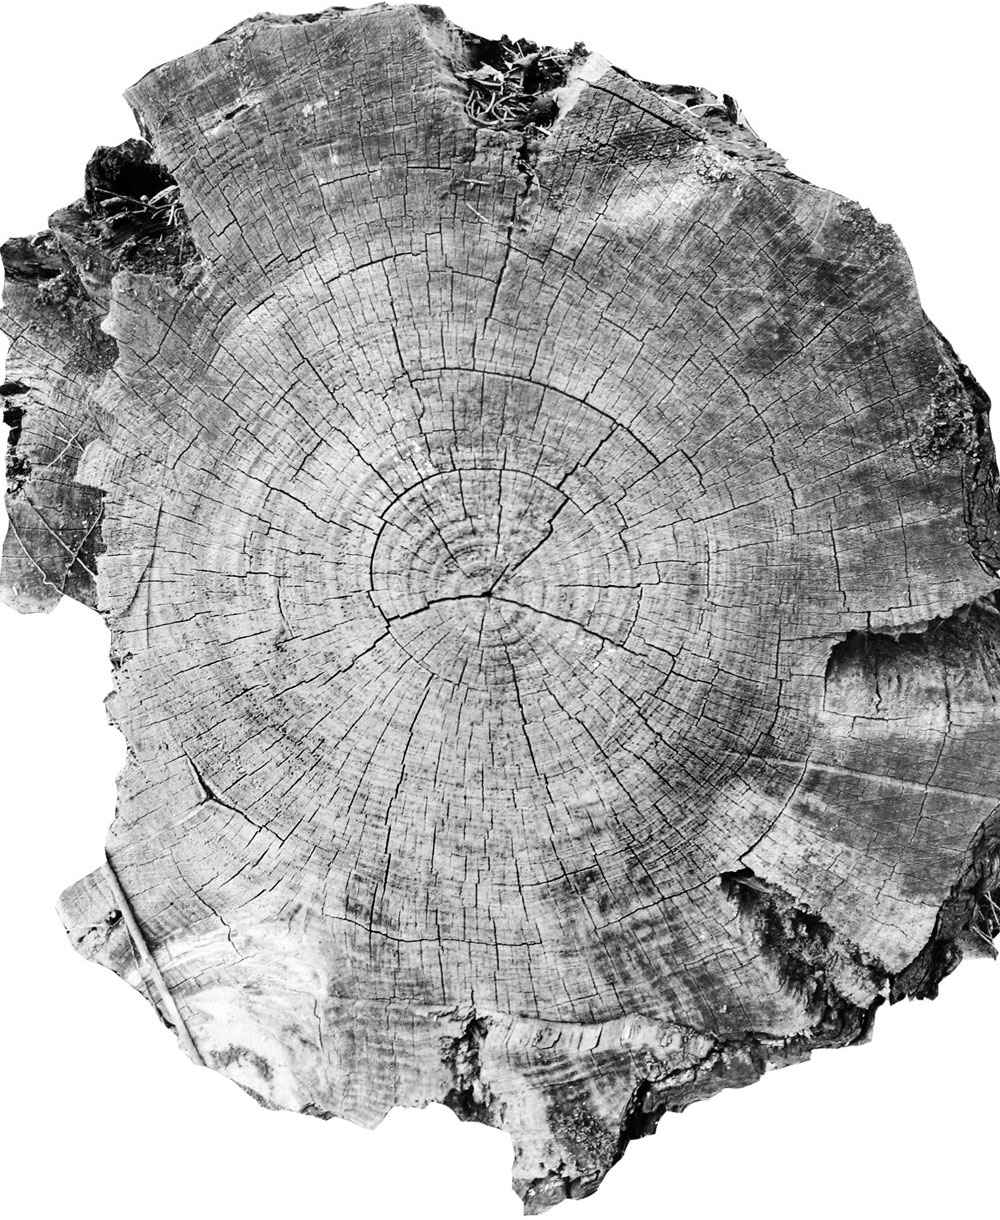 The photograph of the tree